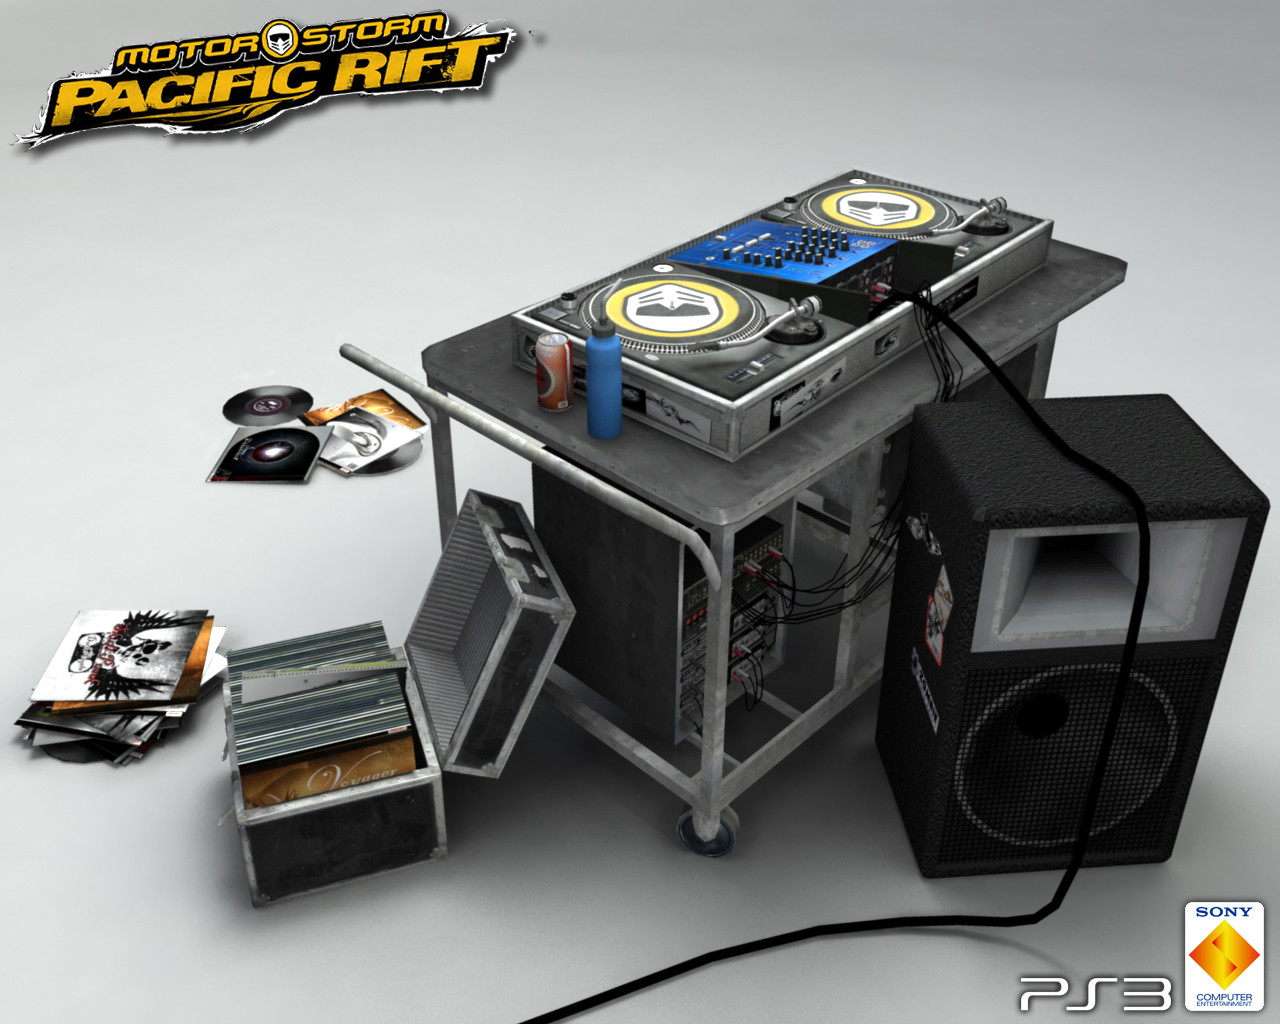 Dean ashley hr motorstorm2 props djsetup 1